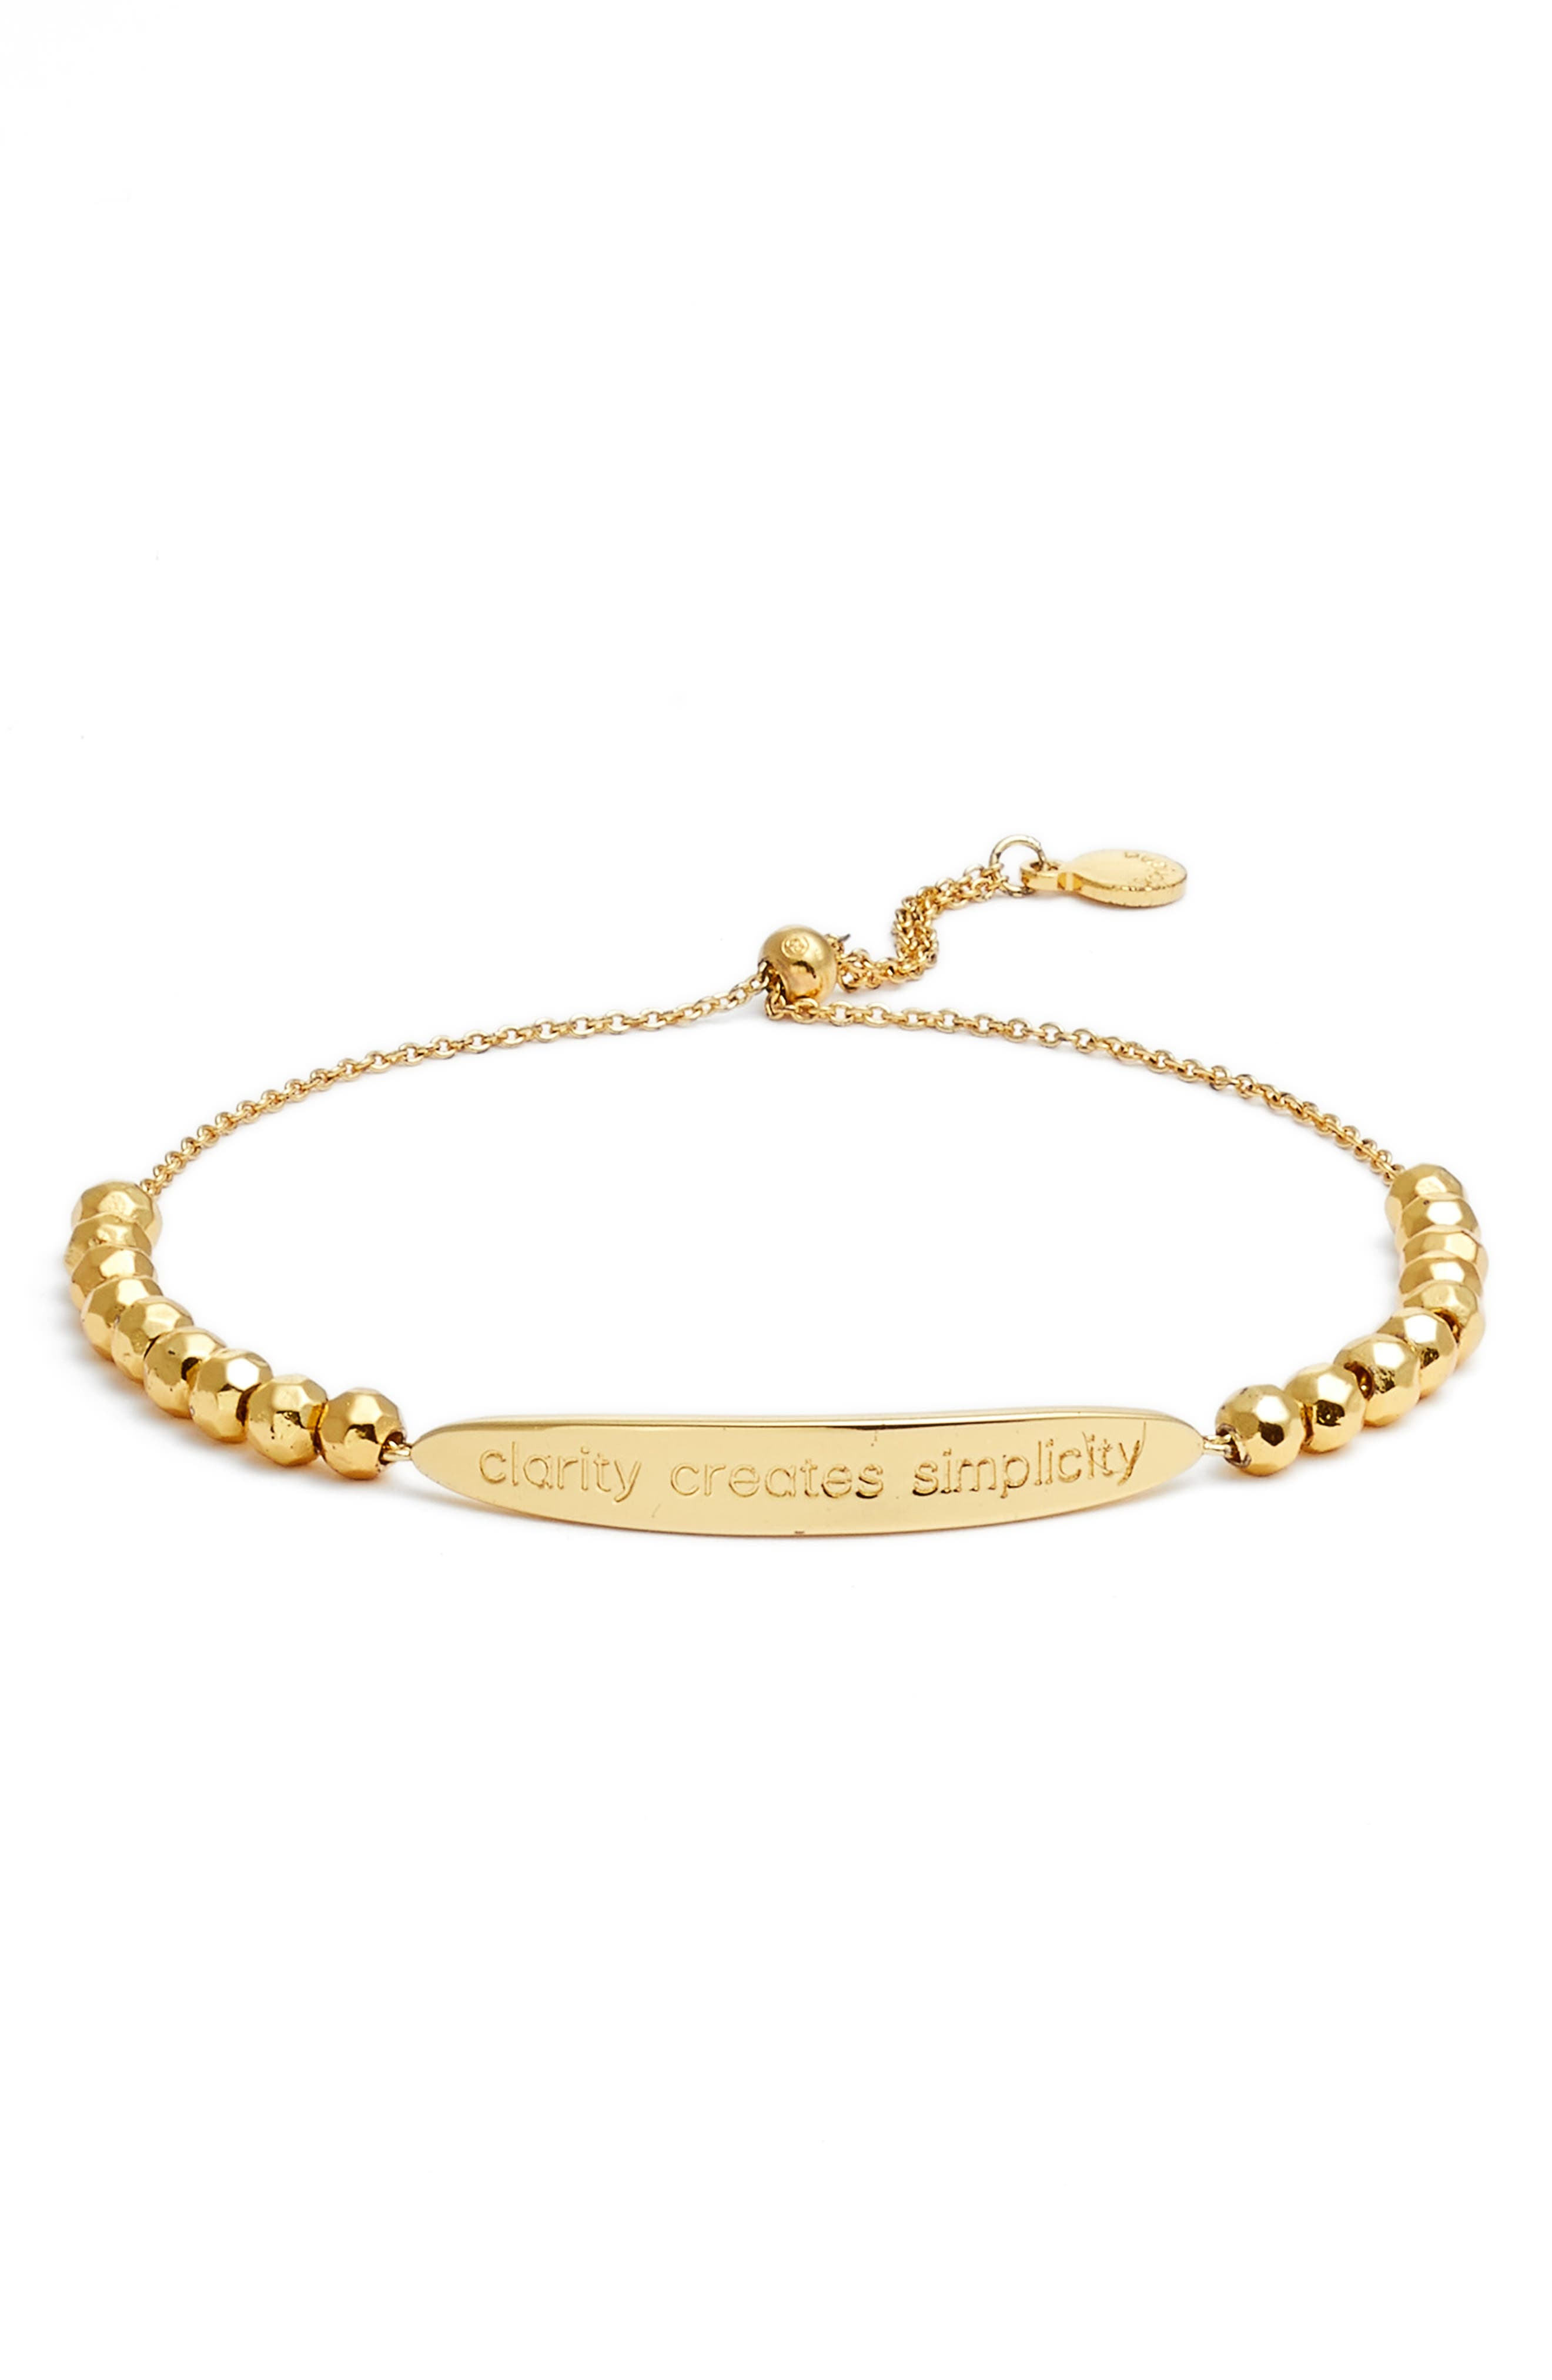 Power Intention Clarity Creates Simplicity Bangle,                         Main,                         color, Gold